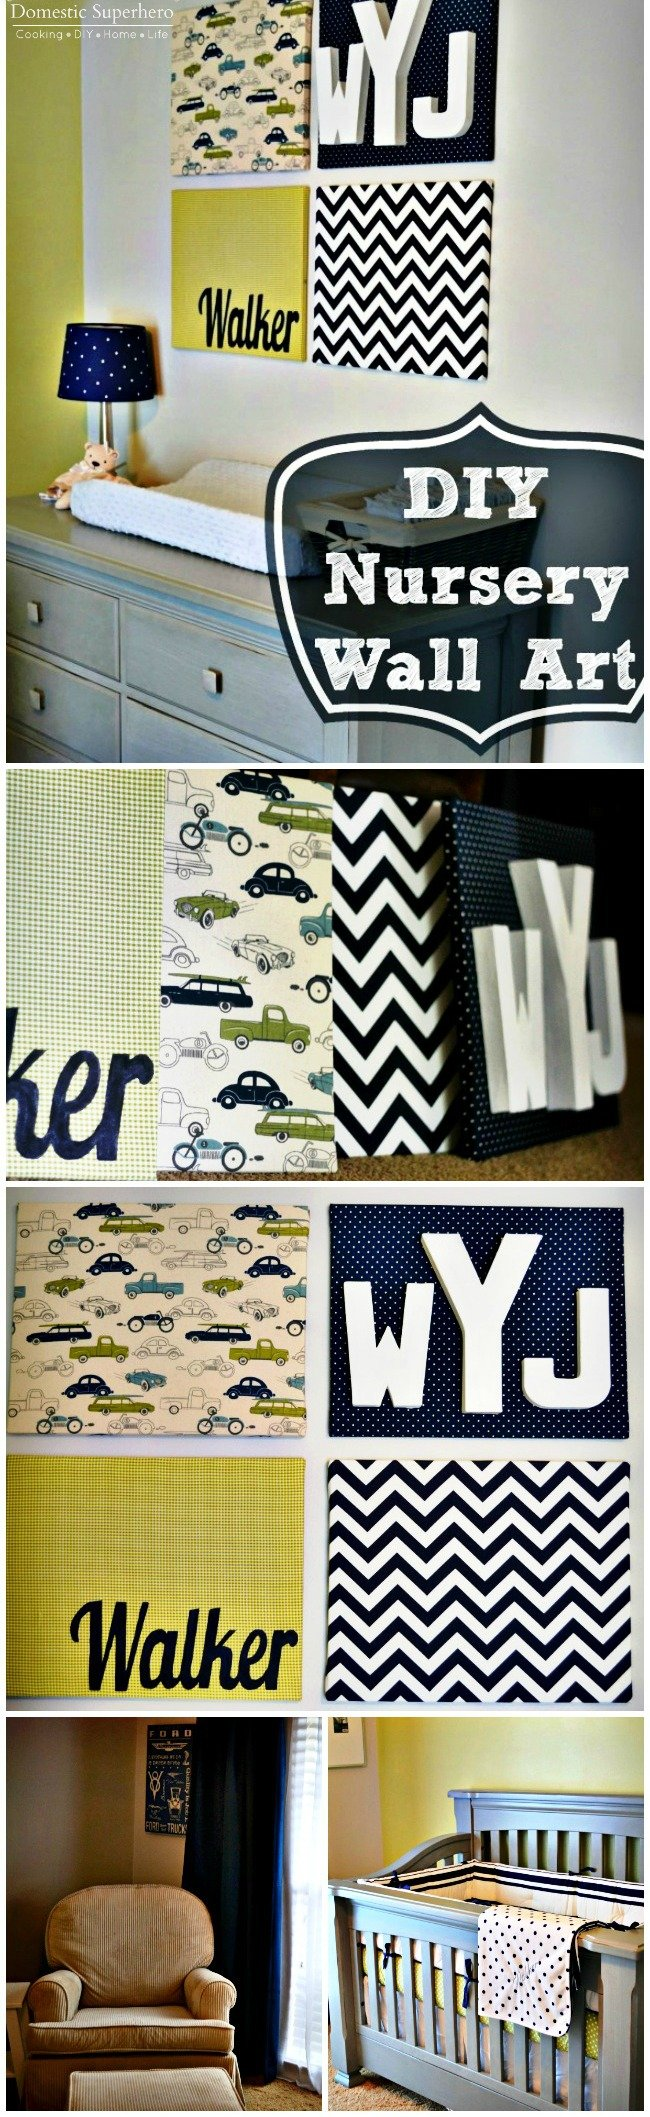 DIY Nursery Wall Art and a Nursery Tour - this is the easiest and most saught after wall art! Perfect for a gift or your own room!